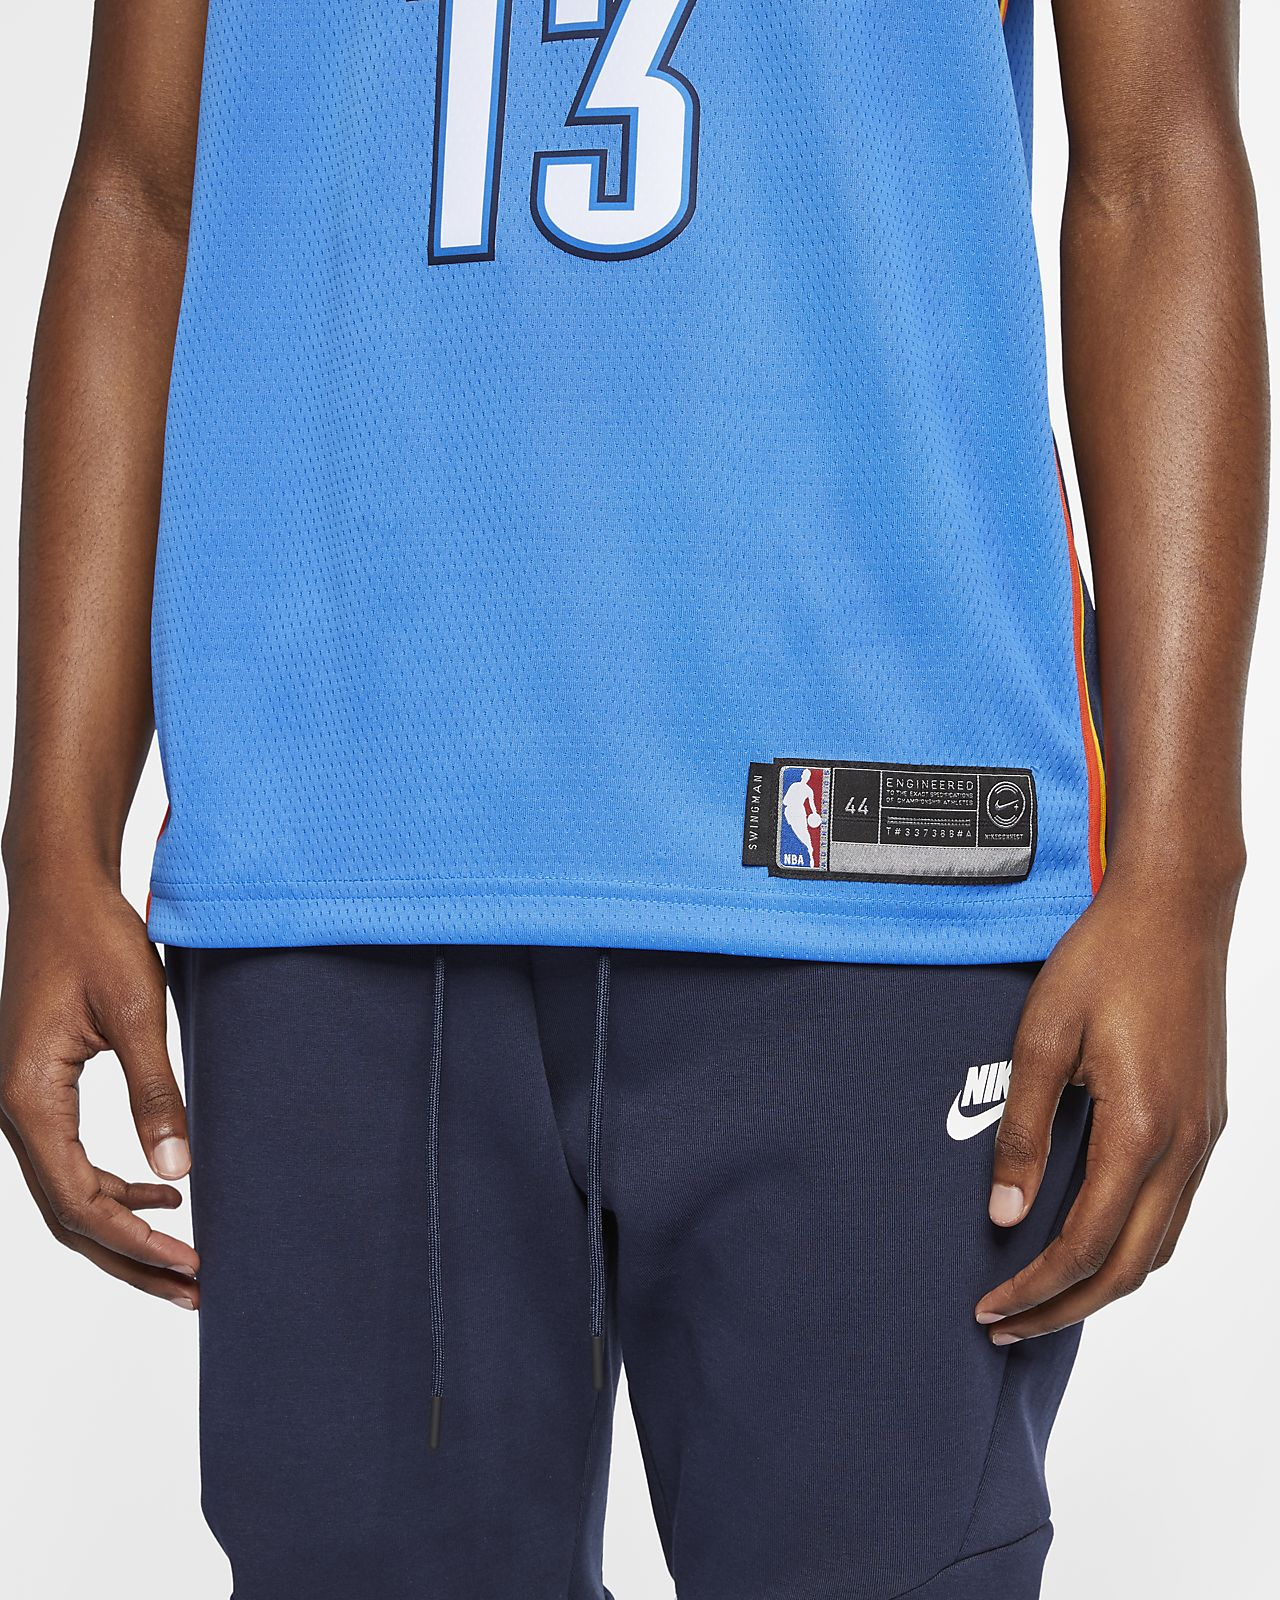 690c2c52d047 ... Paul George Icon Edition Swingman (Oklahoma City Thunder) Men s Nike  NBA Connected Jersey